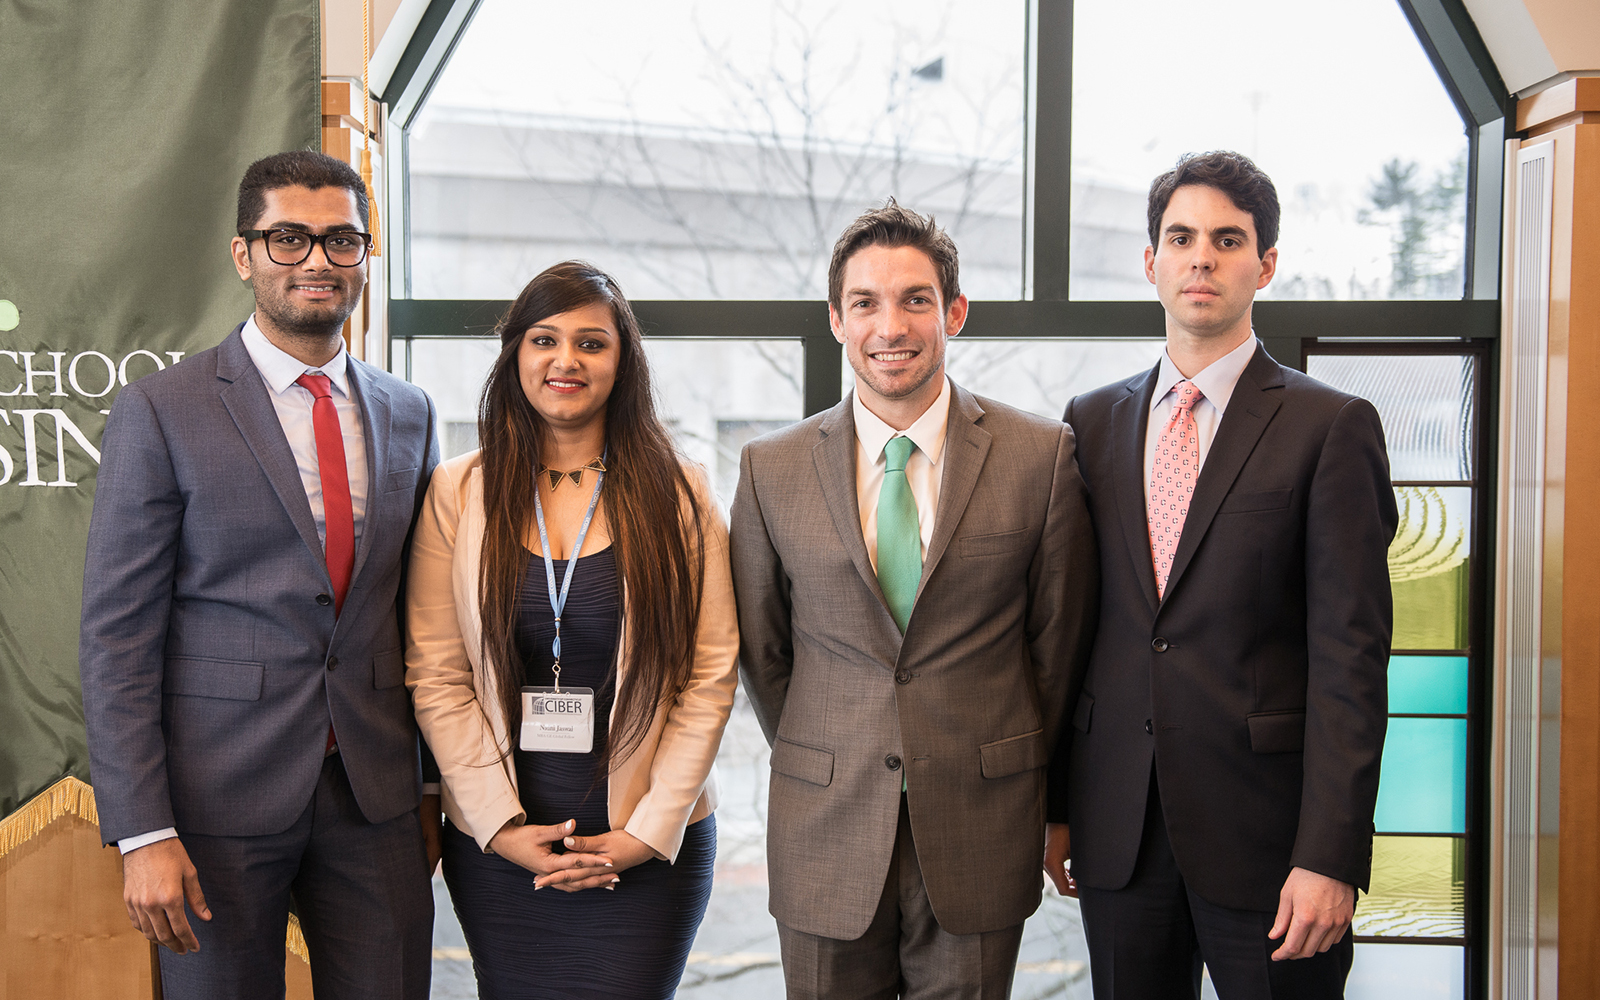 2017 GE Global Fellows Milin Chhanechhara, Nidhi Jaswal, Leonard Borriello, and Michael Ballard (Nathan Oldham/UConn School of Business)